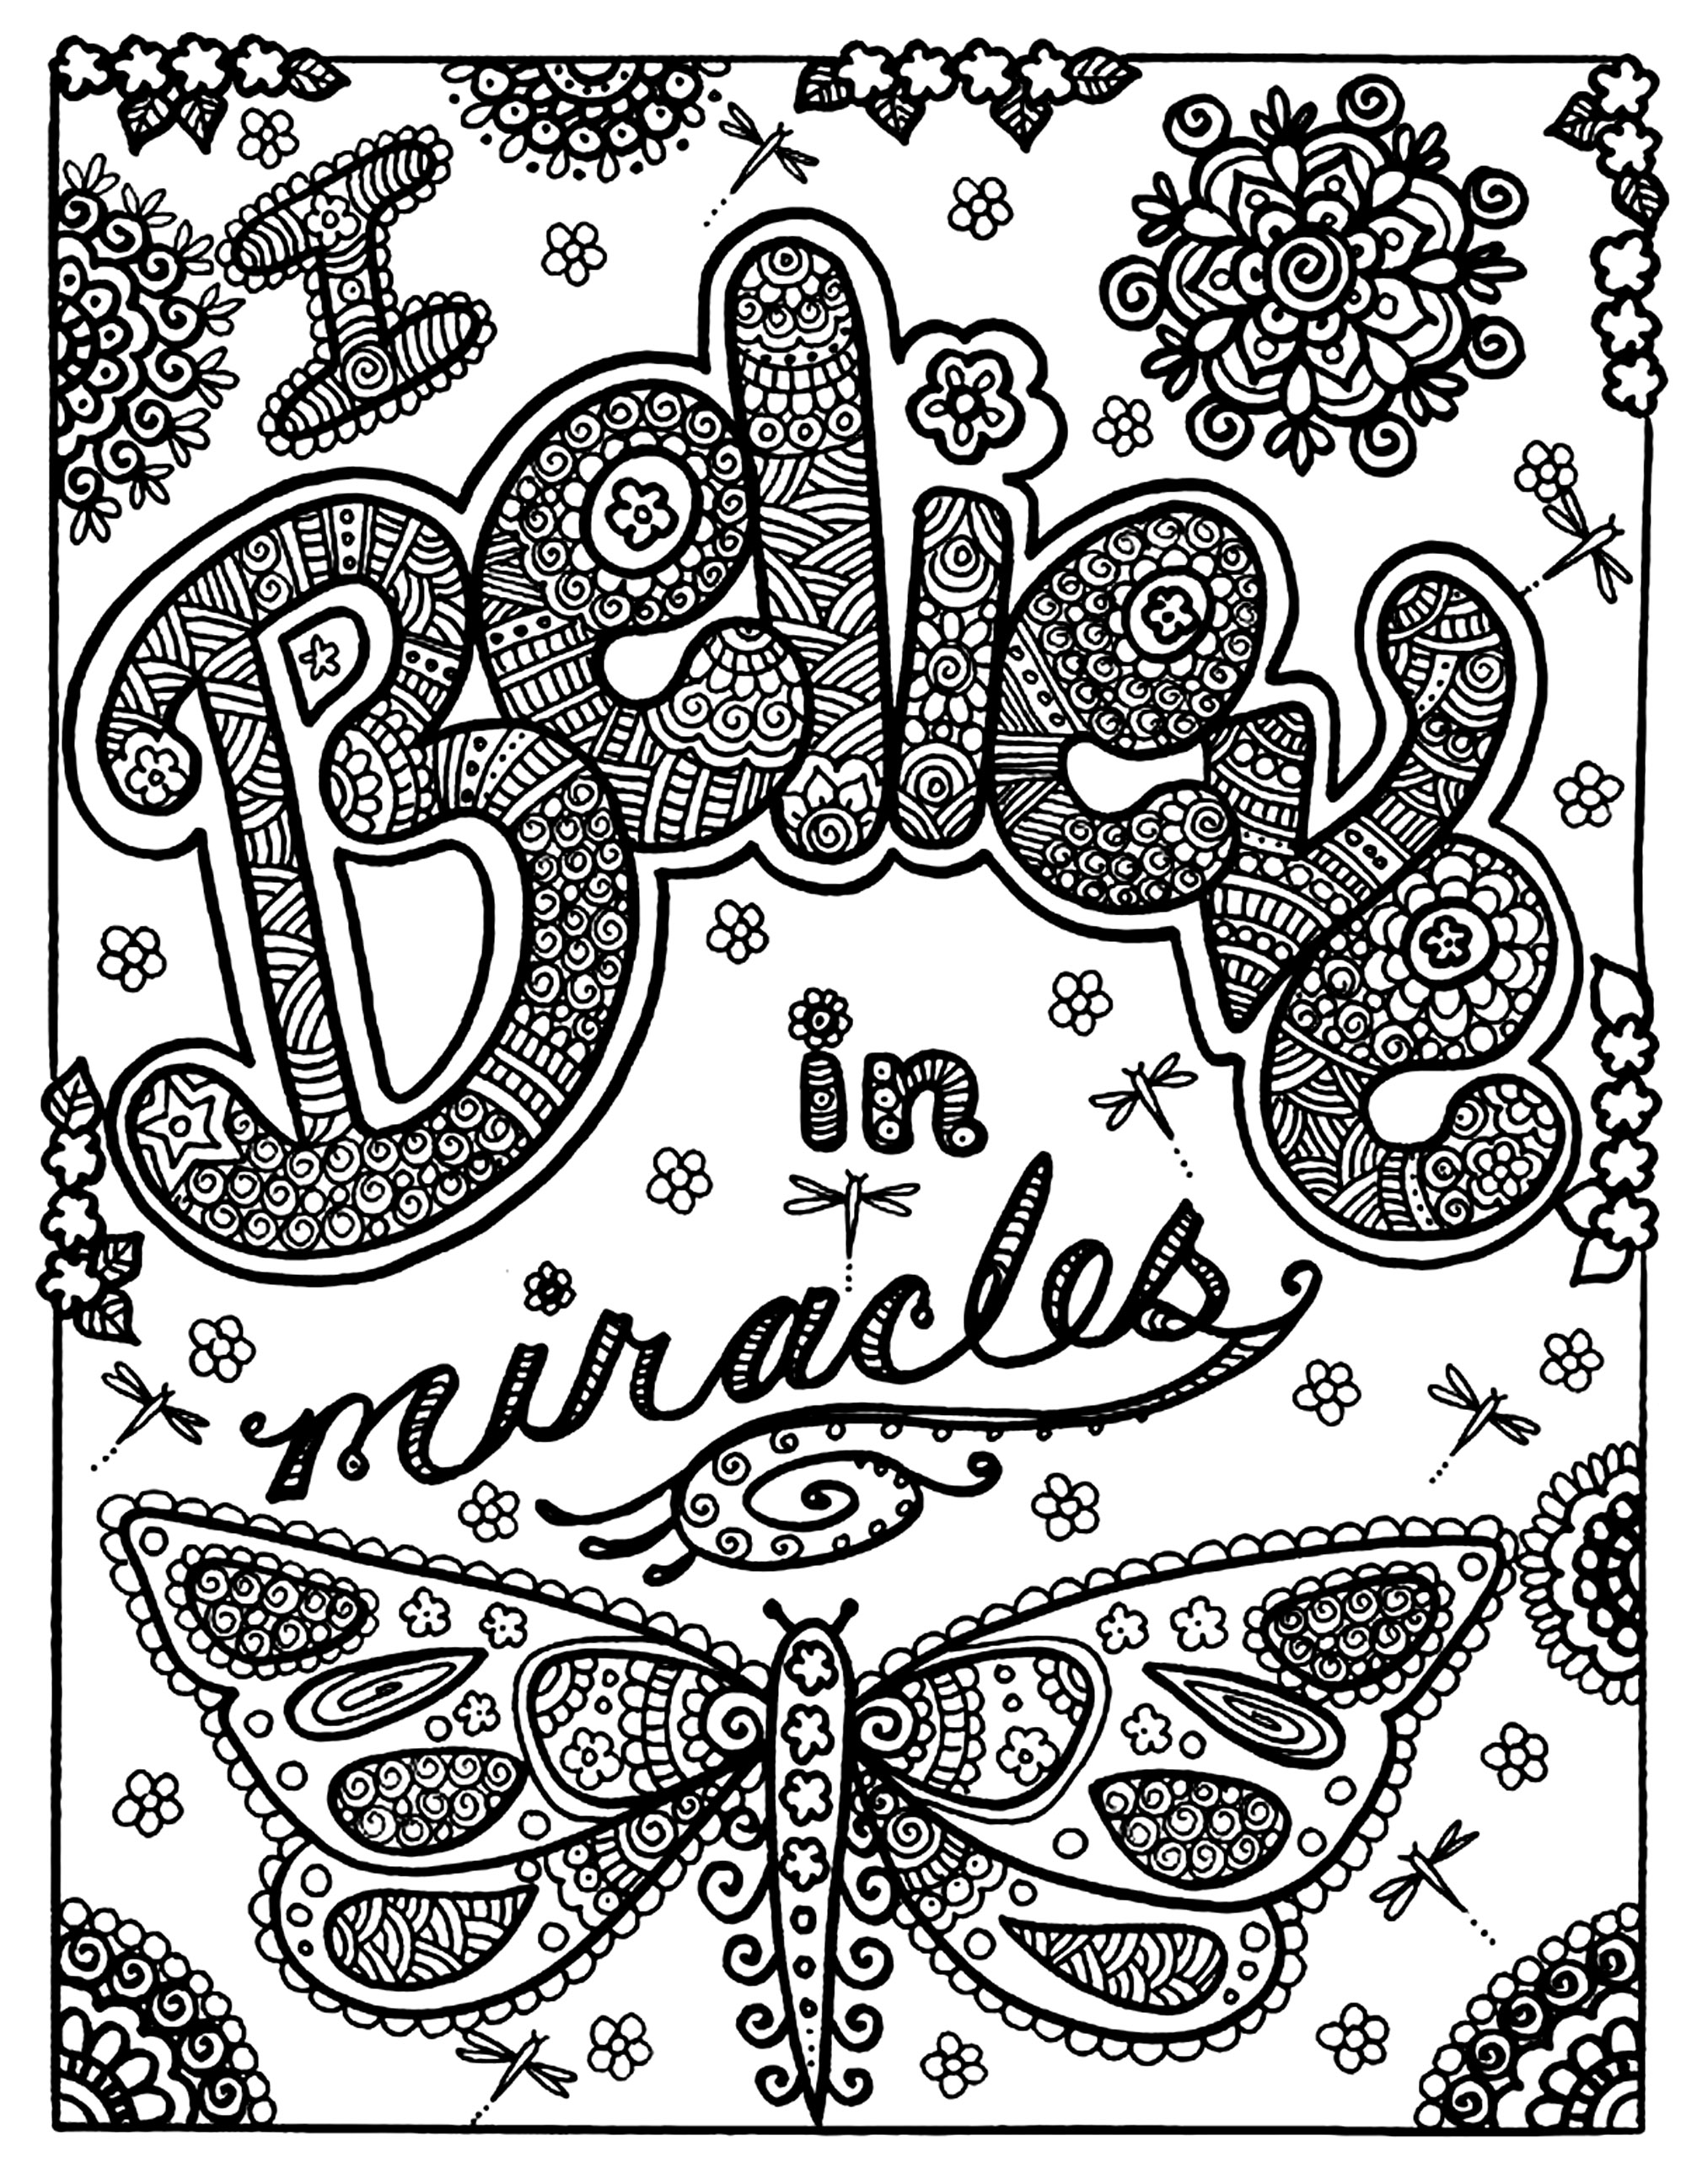 Believe miracles papillon adult - Coloriages d\'Insectes - 100 ...